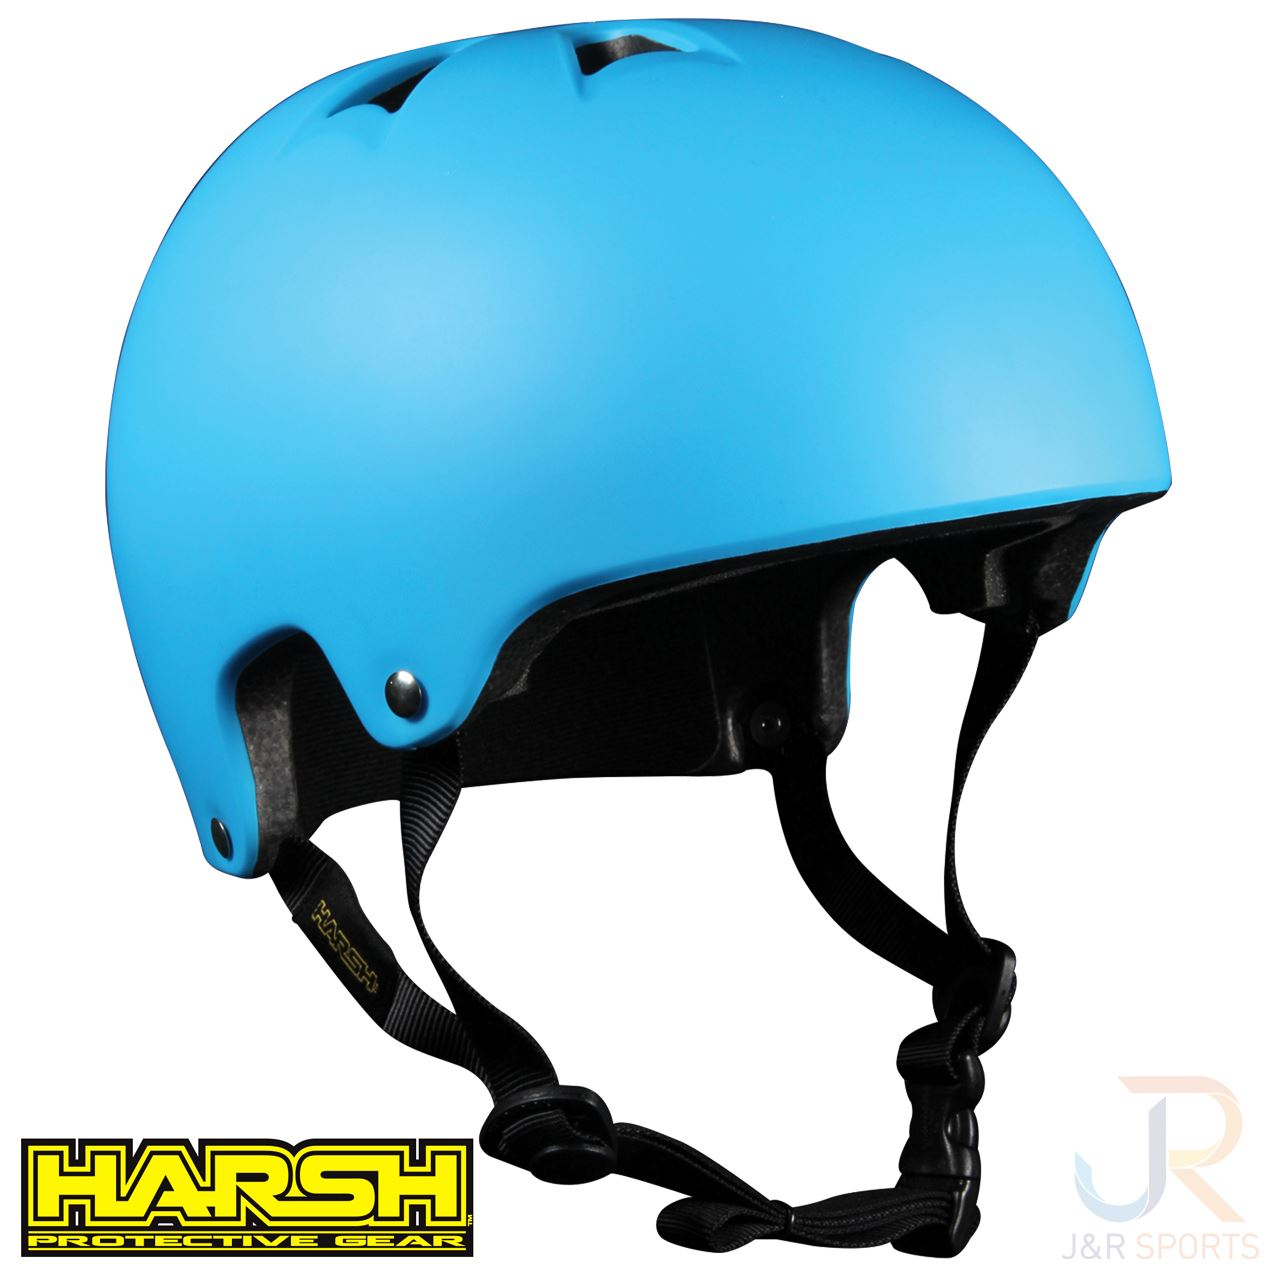 Harsh Pro EPS Helmet - Sky Blue